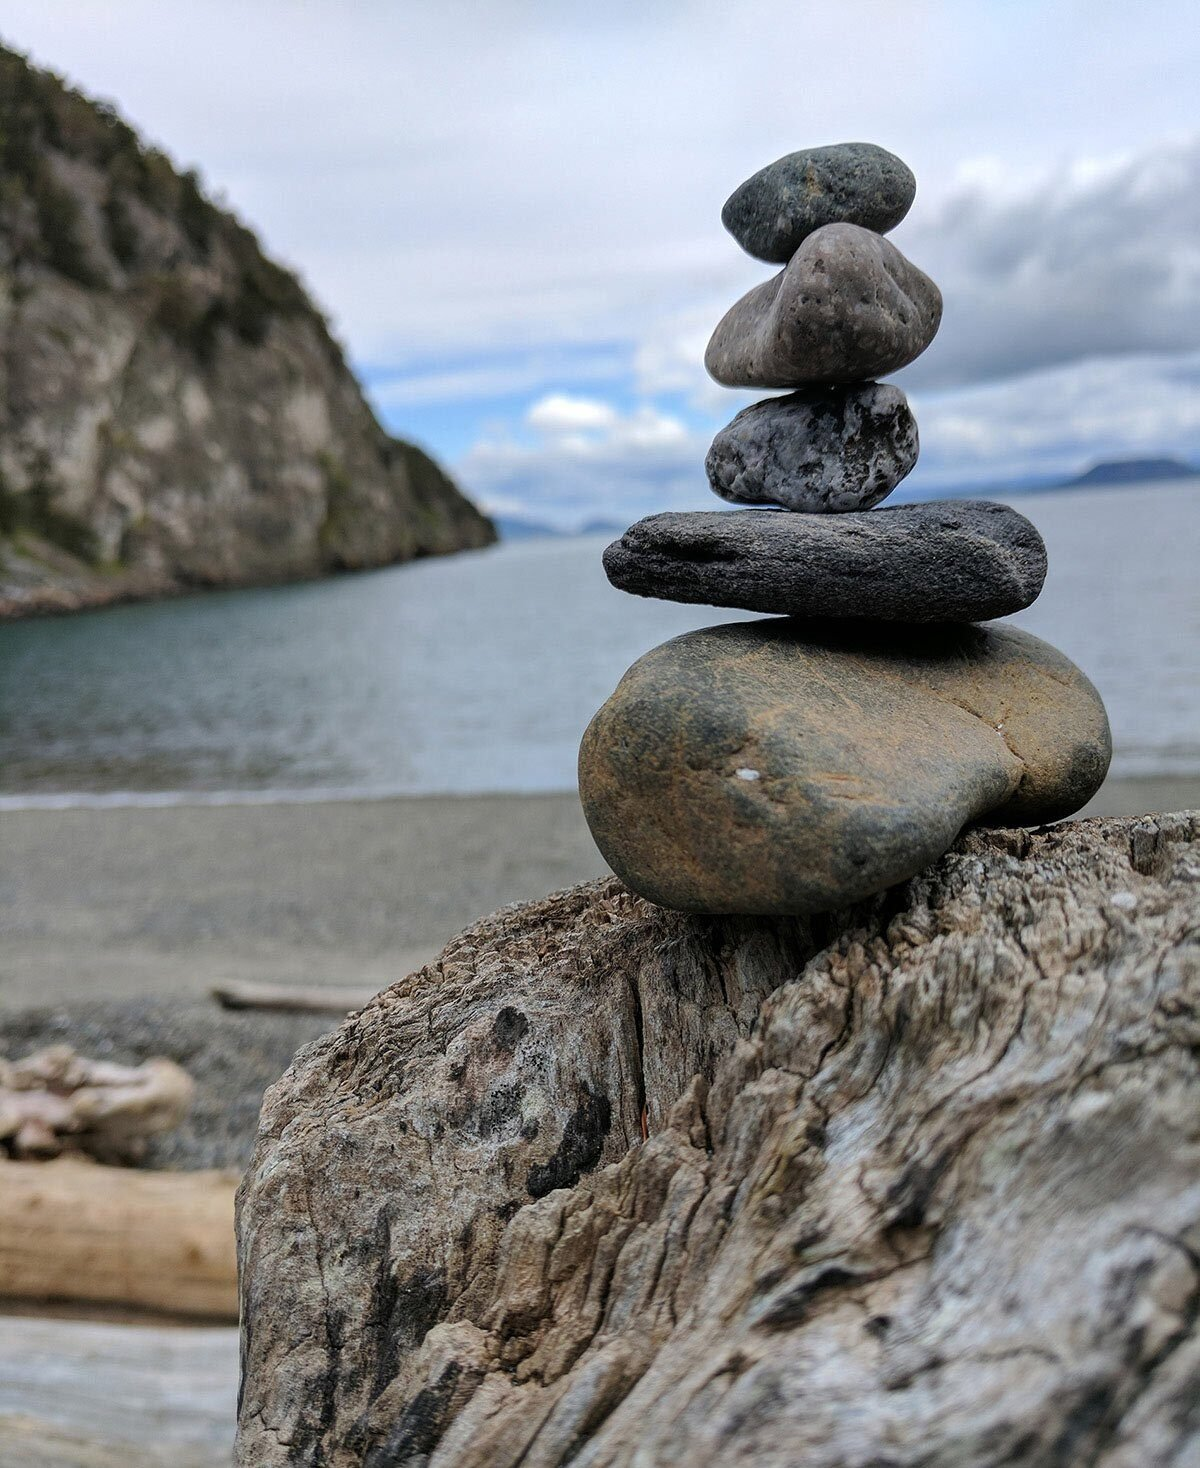 Stacked rocks on driftwood on a pnw beach.